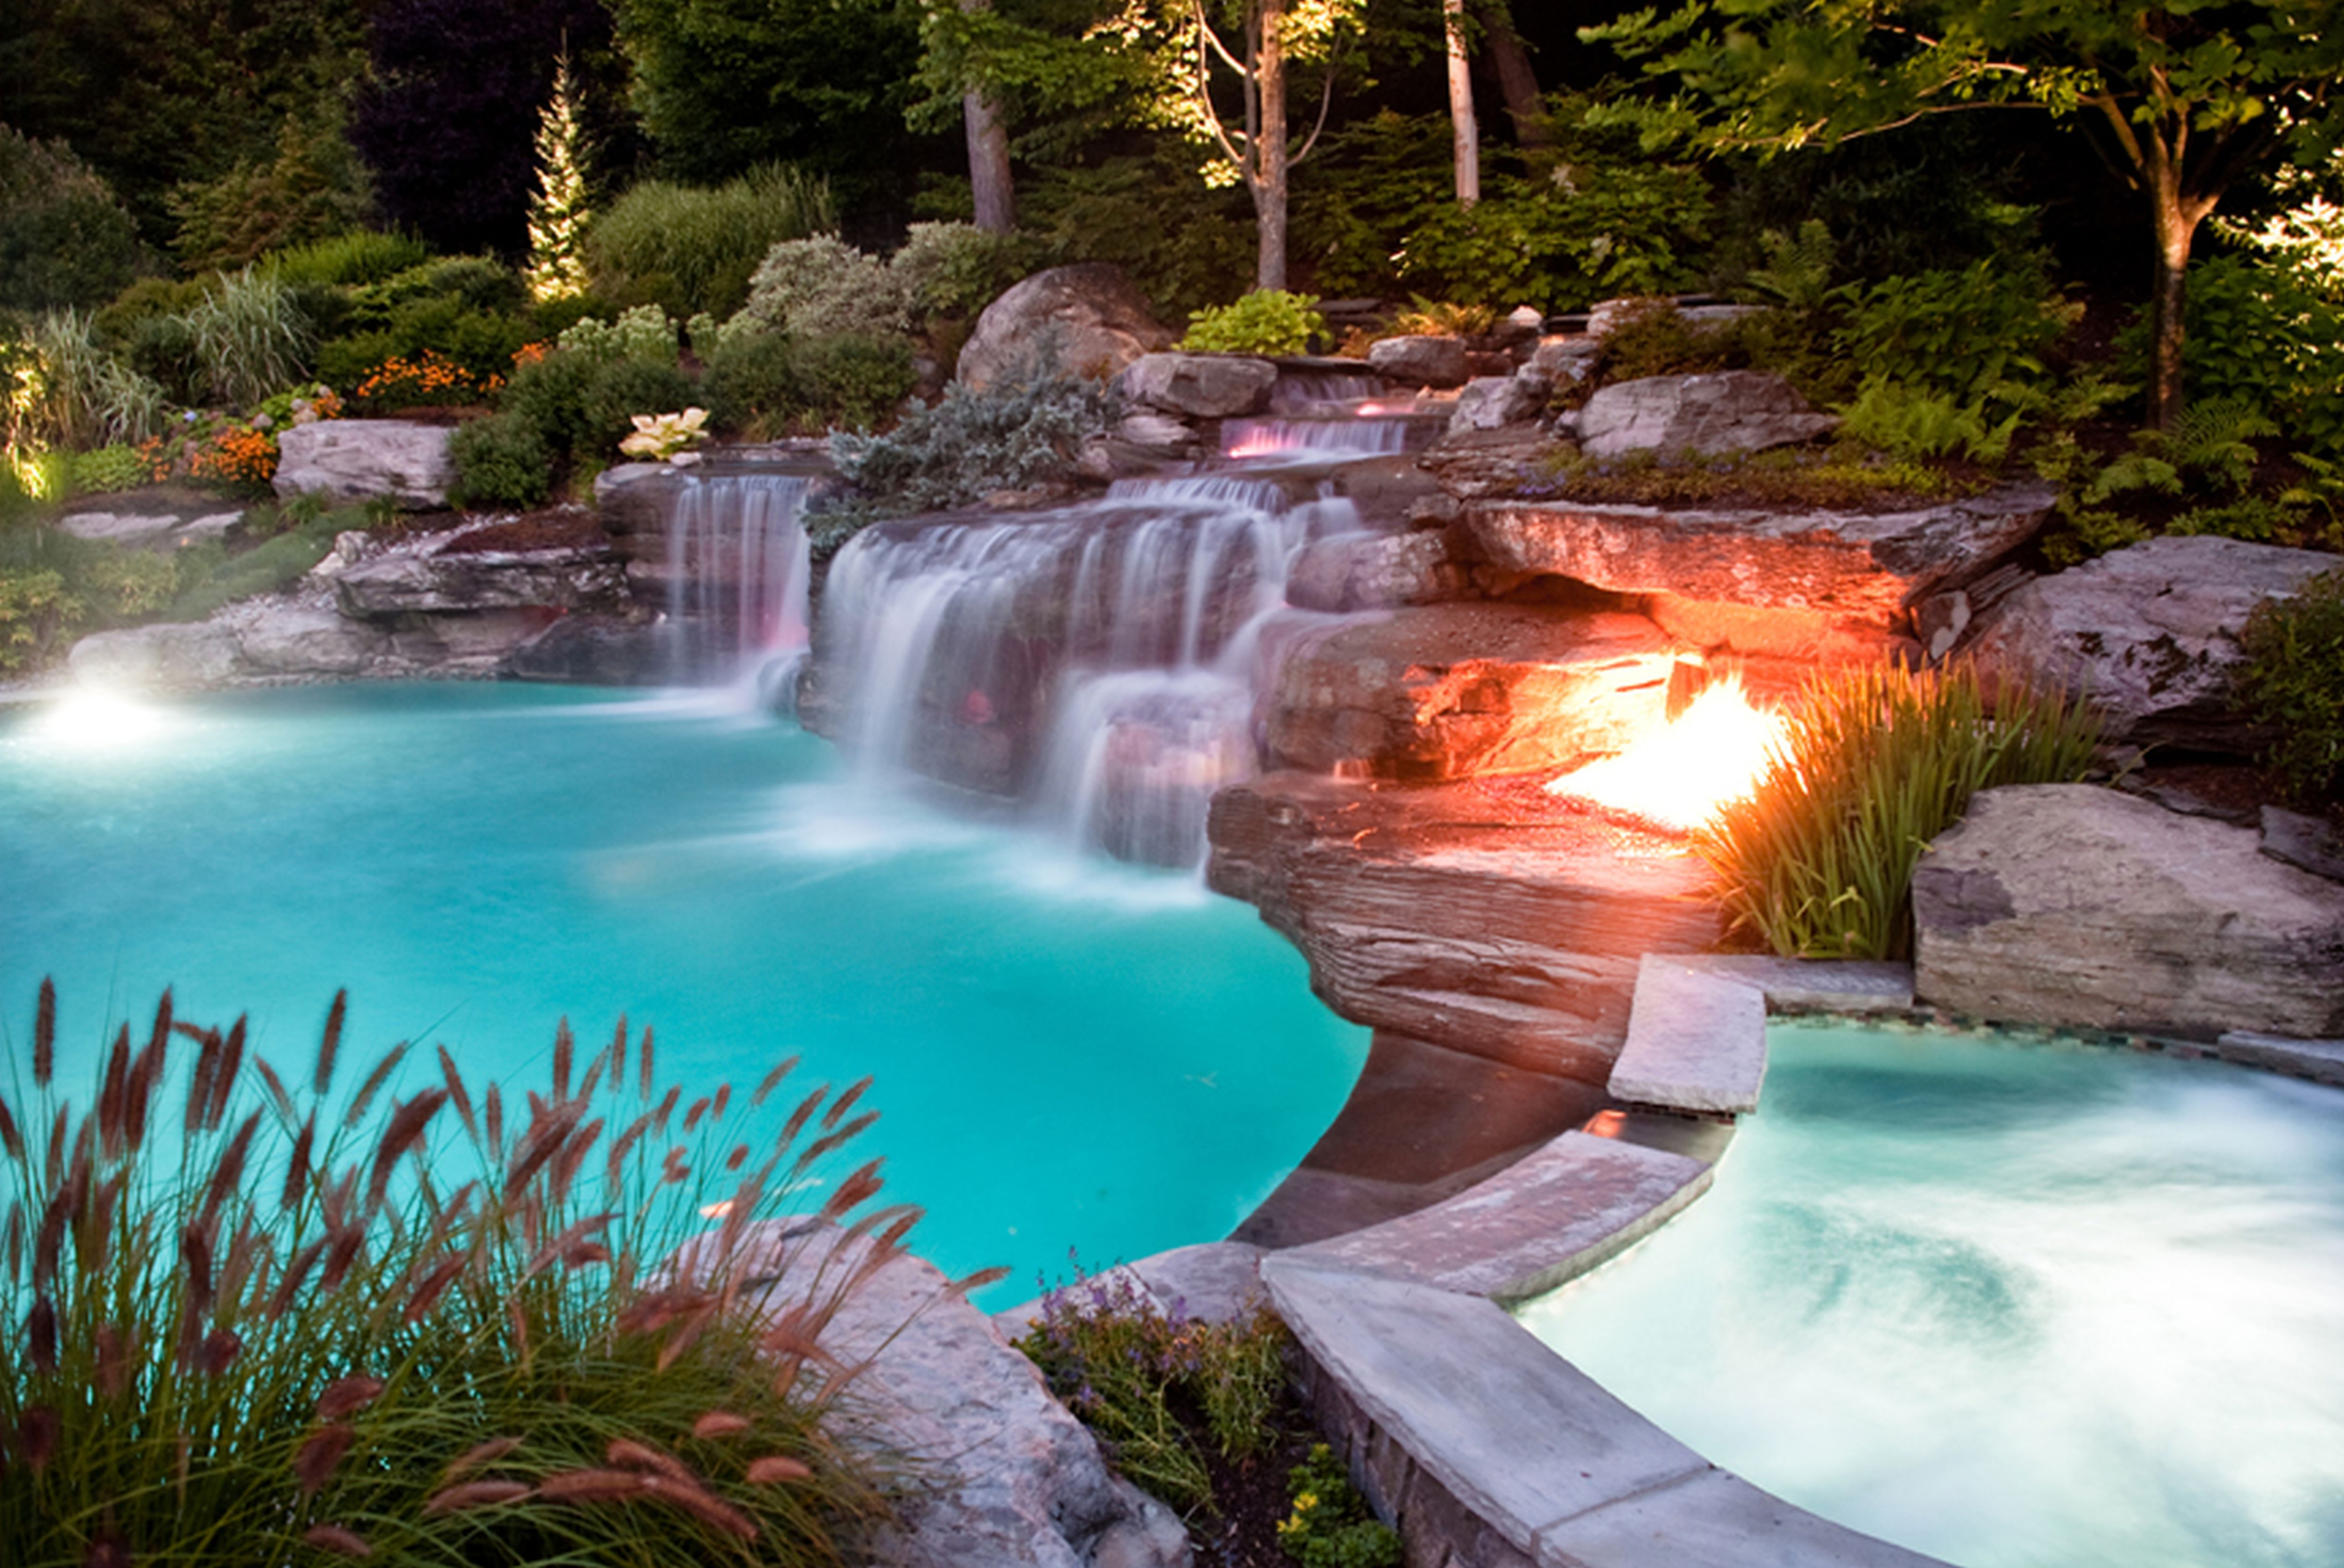 23 awesome in ground pools you have to see to believe